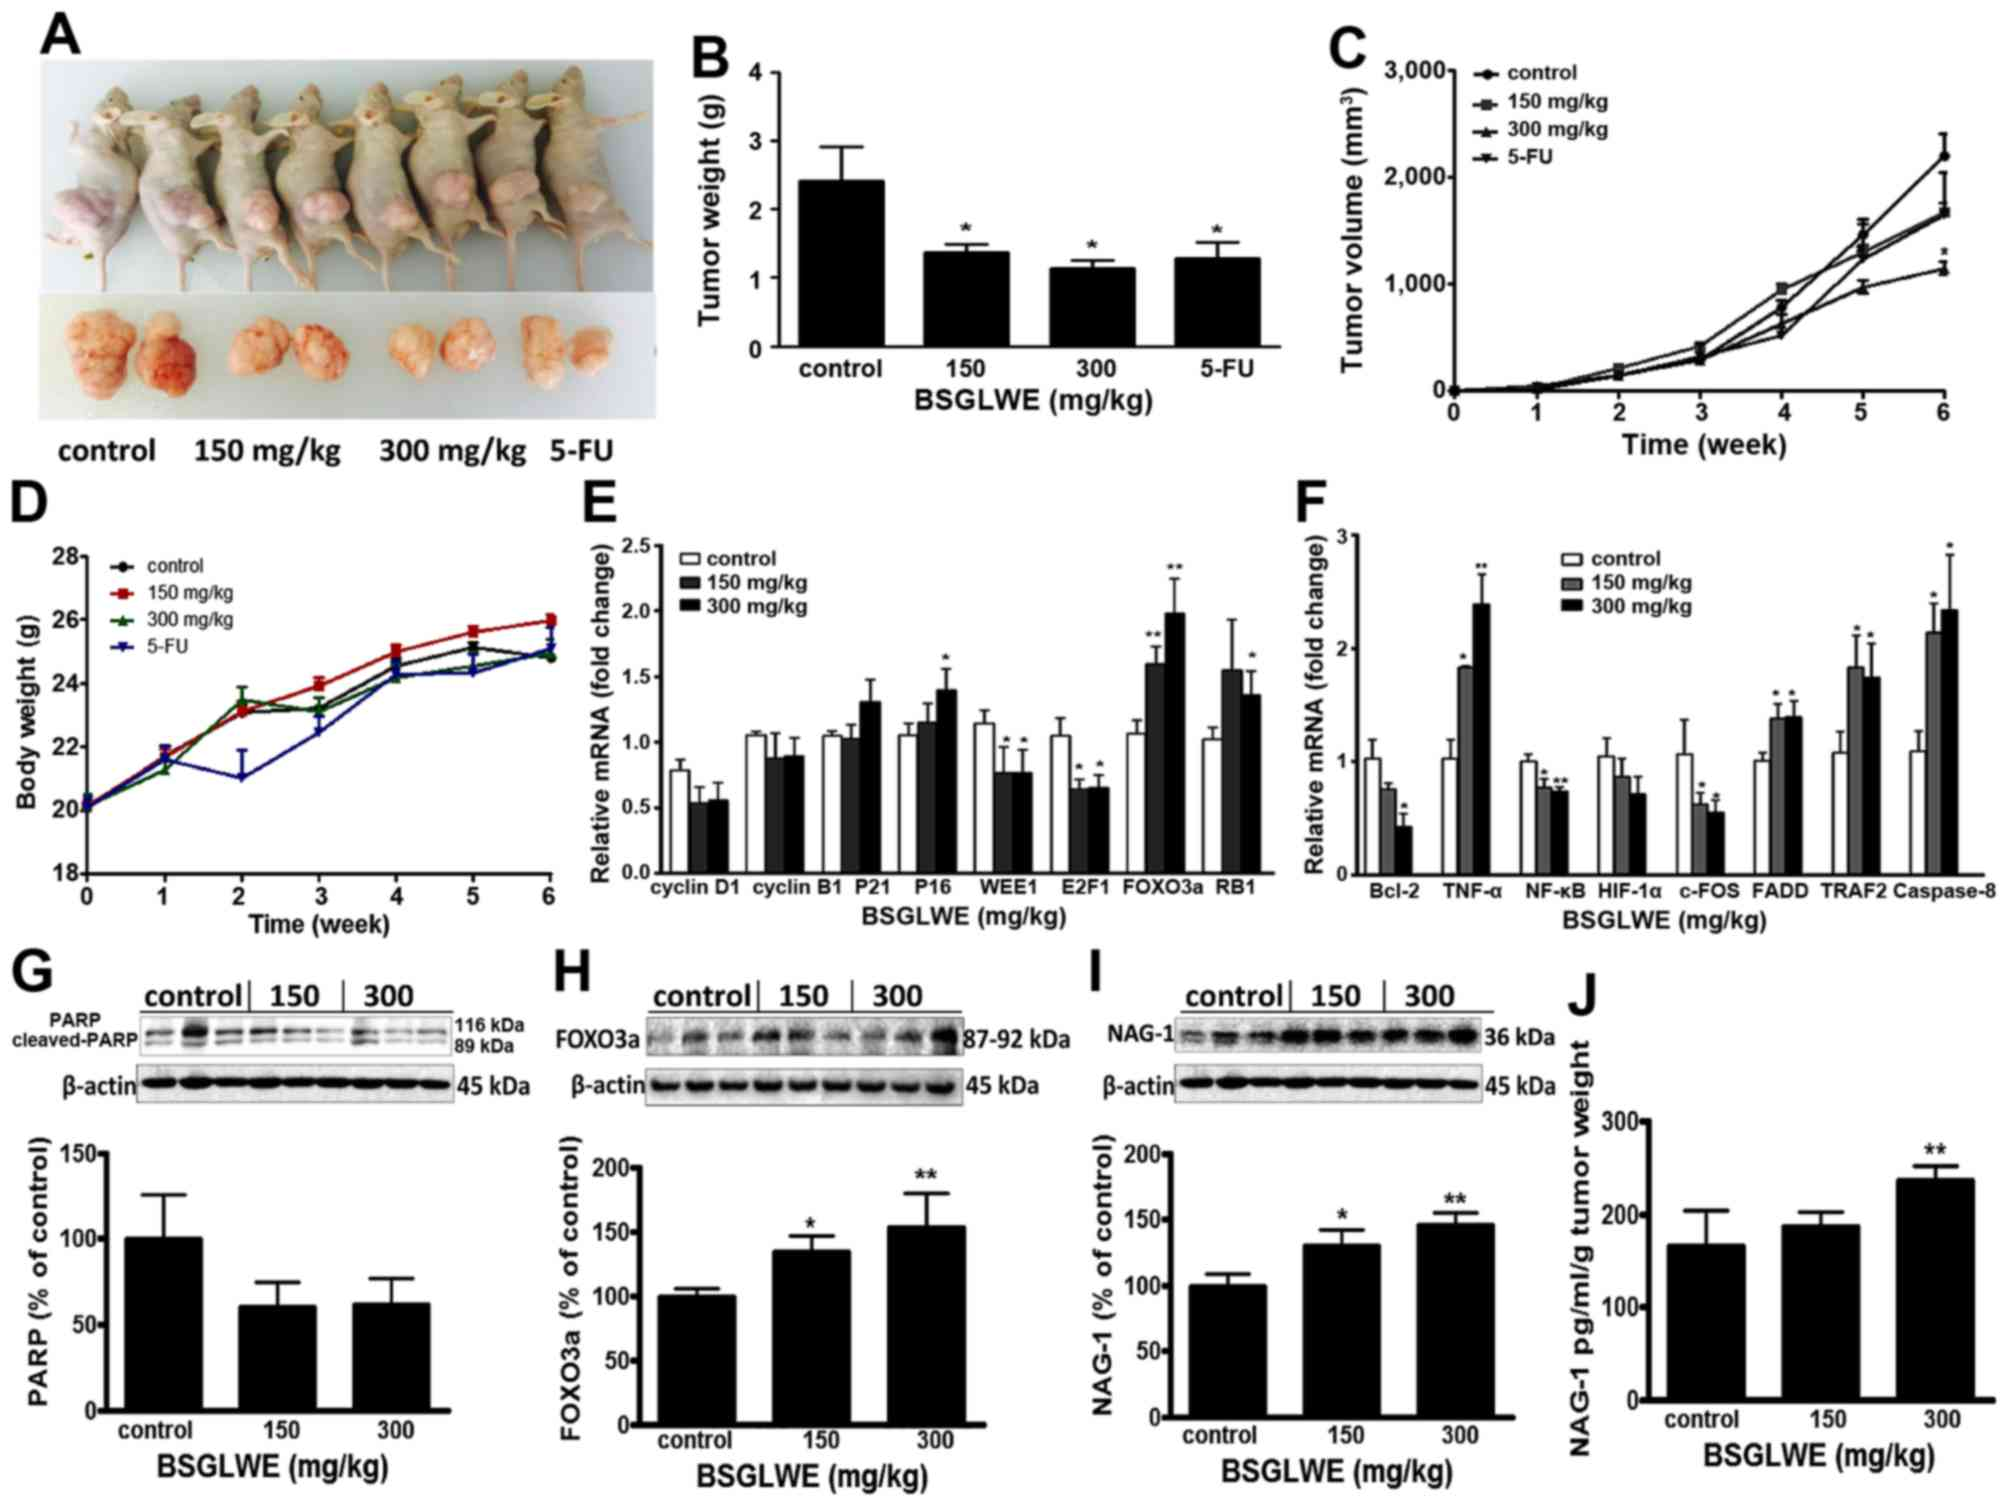 Anticarcinogenic Effects Of Water Extract Of Sporoderm Broken Spores Of Ganoderma Lucidum On Colorectal Cancer In Vitro And In Vivo